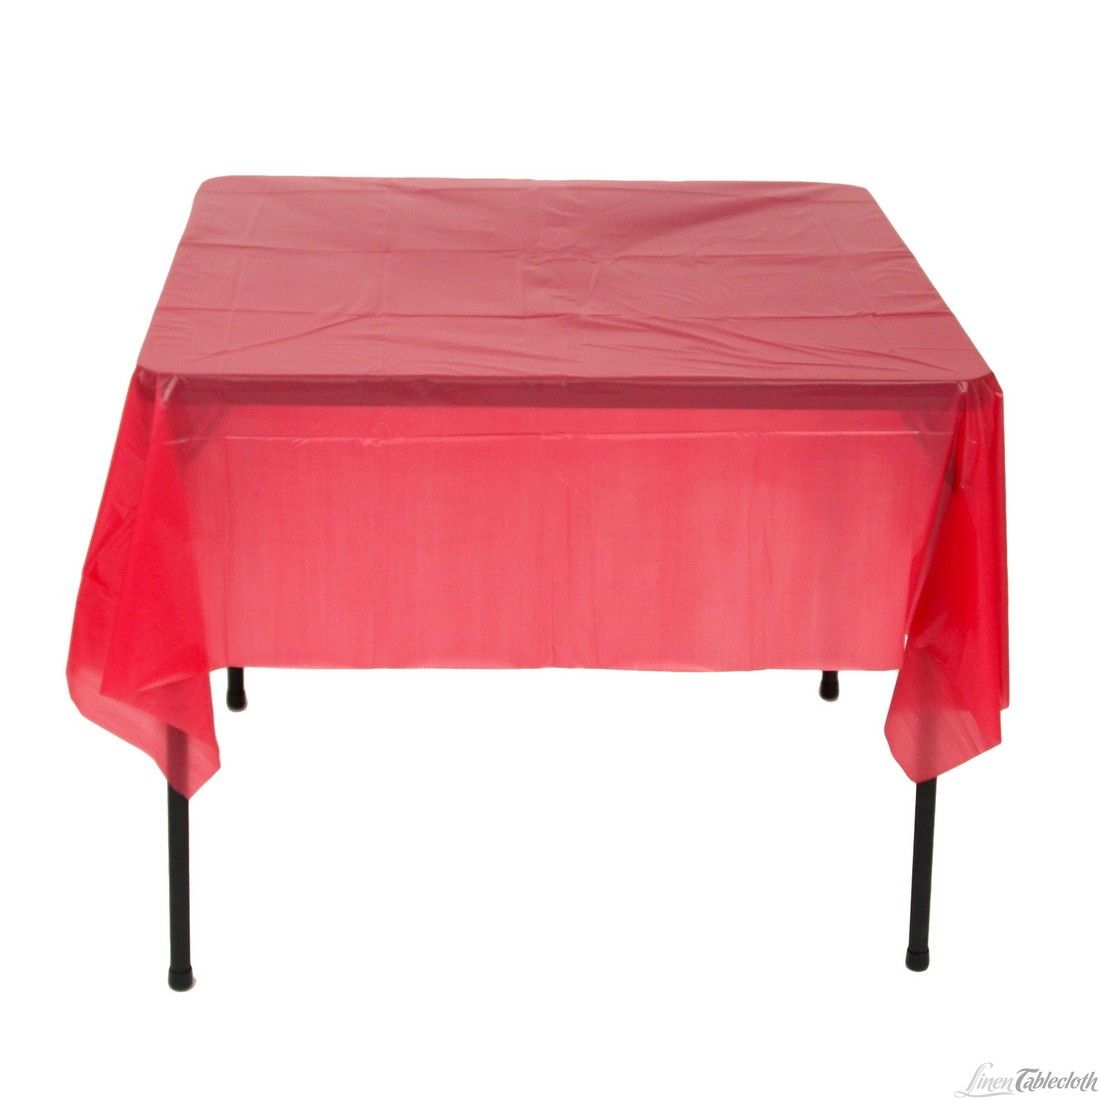 Square Disposable Plastic Tablecloth Red For Only 1 35 At Linentablecloth Perfect Any Wedding And Event